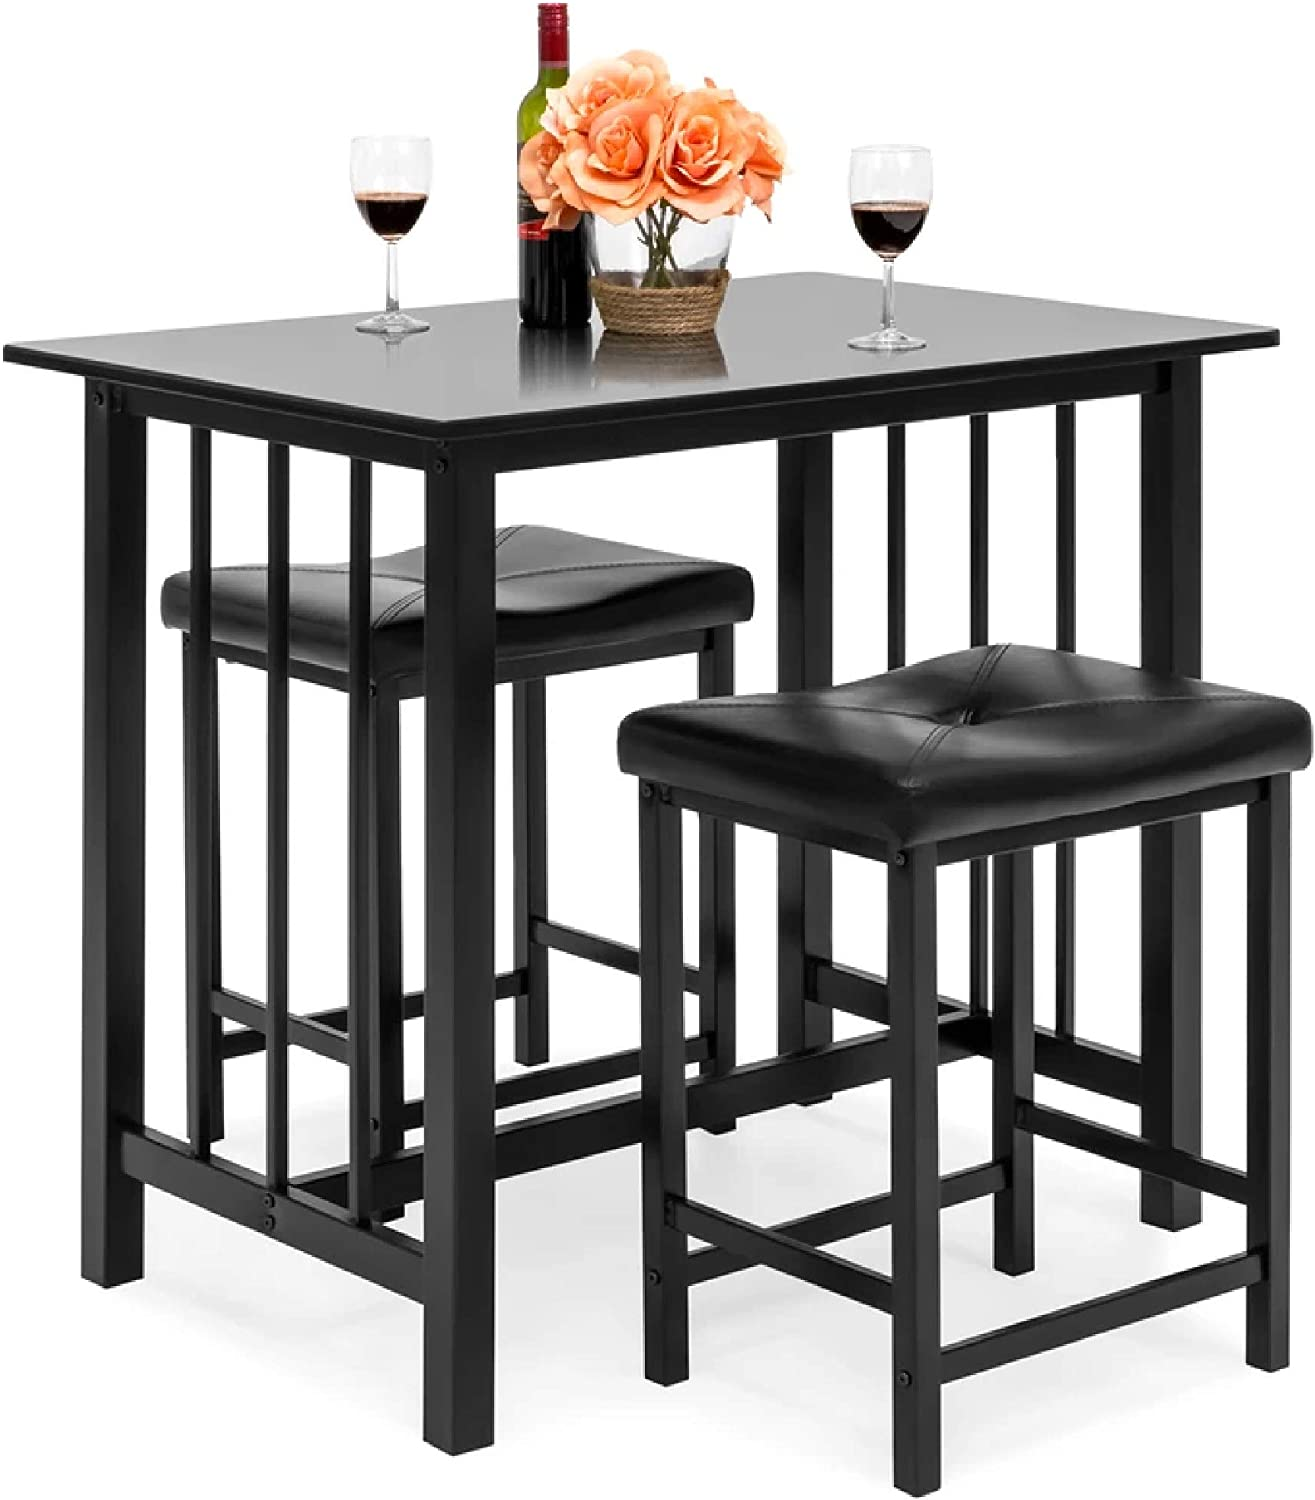 Best Choice Products 3 Piece Counter Height Dining Table Furniture Set For Kitchen Bar Bonus Room W 2 Faux Leather Backless Stools Compact Space Saving Design Black Table Chair Sets